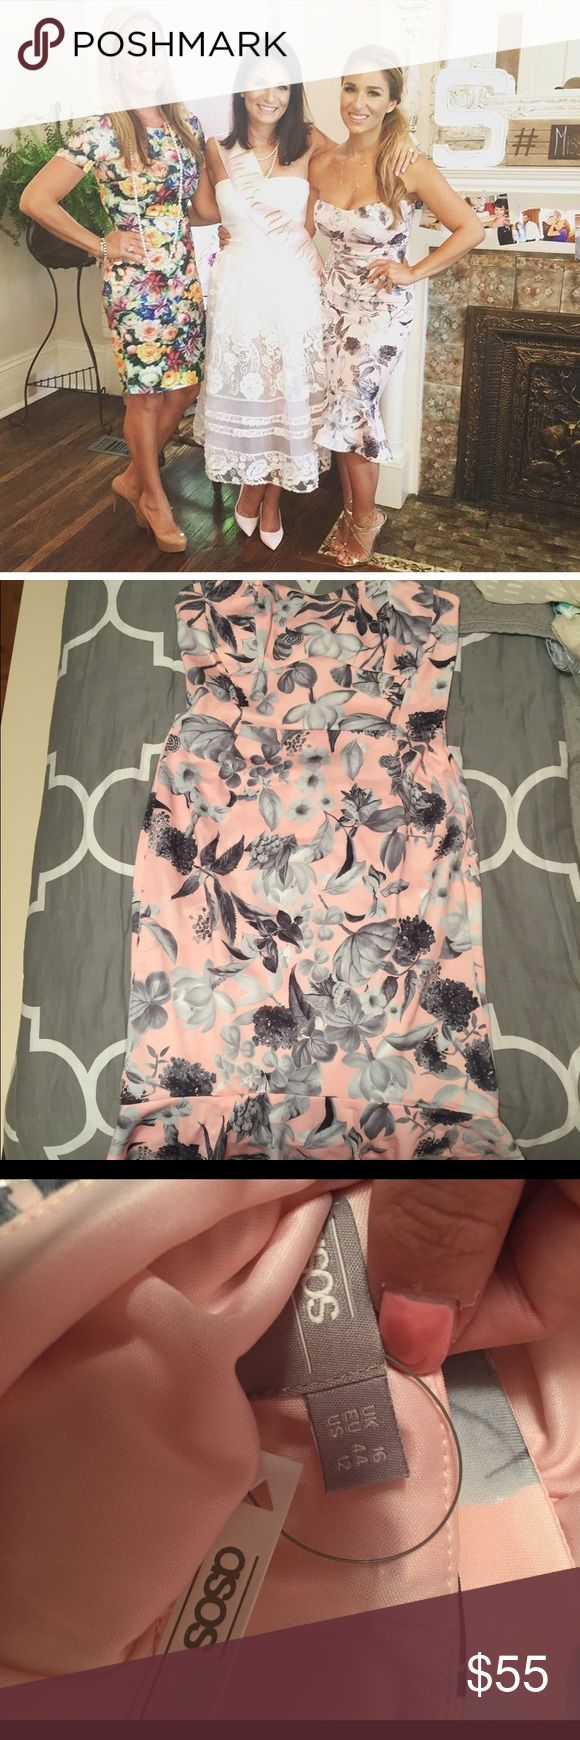 Floral peplum dress ASO Jessie James Decker NWT Brand new, never worn with all tags and original packaging. Gorgeous ASOS pink and gray strapless floral peplum midi dress as seen on Jessie James Decker. Perfect dress for various events with spring right around the corner! Wish I could wear this myself, but it is too big on me and I forgot to return it in time to get credit back! Can very easily be altered if you take to a tailor! Reasonable offers accepted via offer button, always ships same…